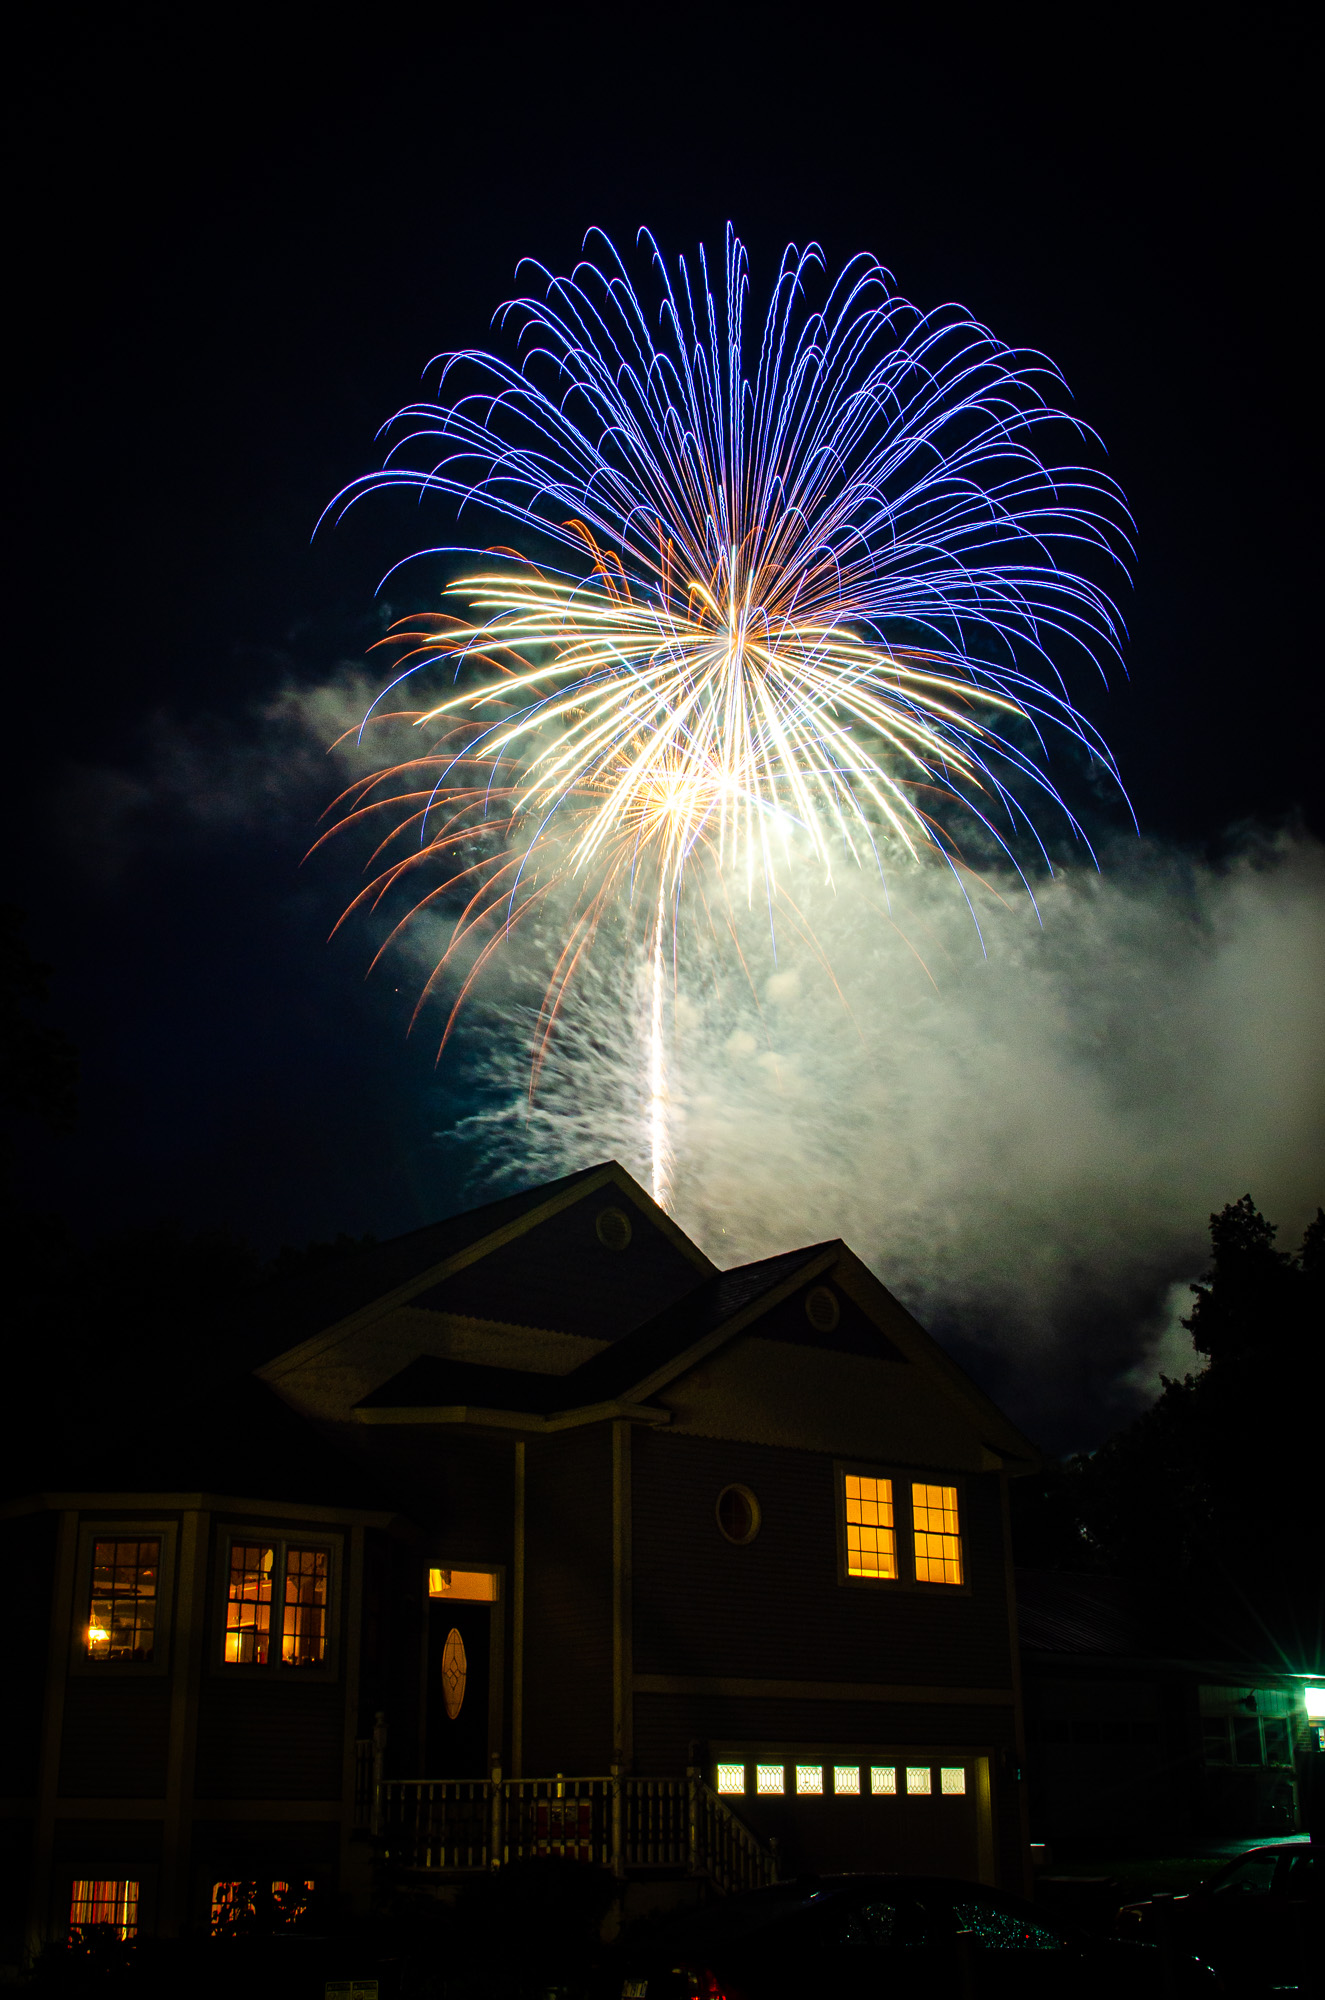 This photo was taken at a friends house in town and for some reason, my town likes to move the fireworks around every year so you really never have a definite idea where they will be launched! I decided to leave the house in the foreground to add some interest. Over the years, it has become one of my favorite shots. Taken in 2013 with a Nikon D7000 + 17-55 2.8 in Waterbury, VT